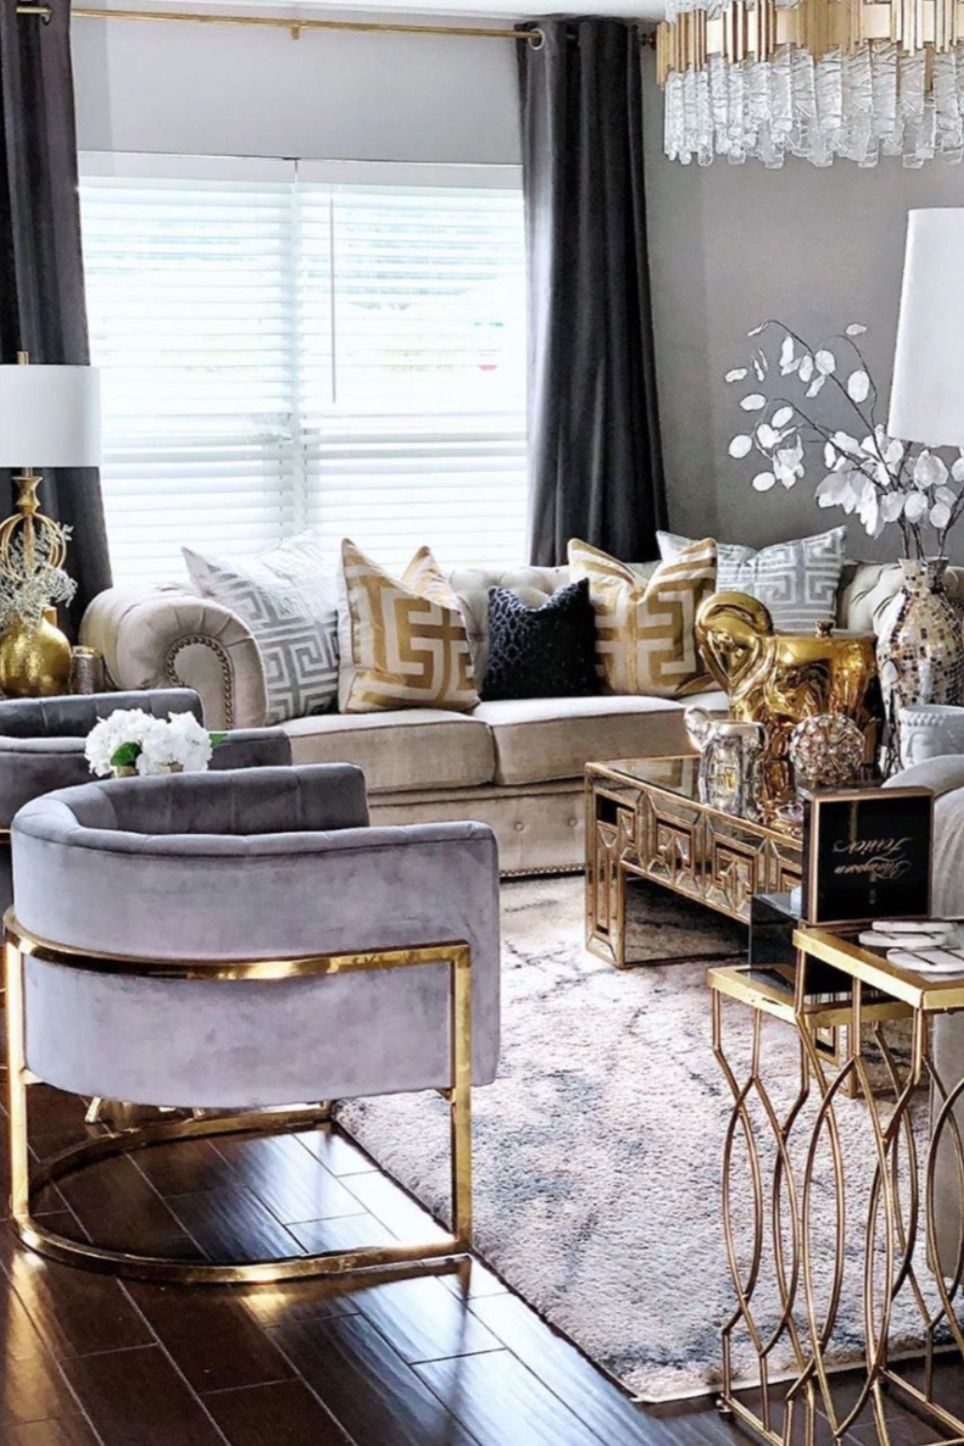 Gold Grand Elephant Candle In 2020 Luxury Living Room Design Luxury Living Room Gold Living Room